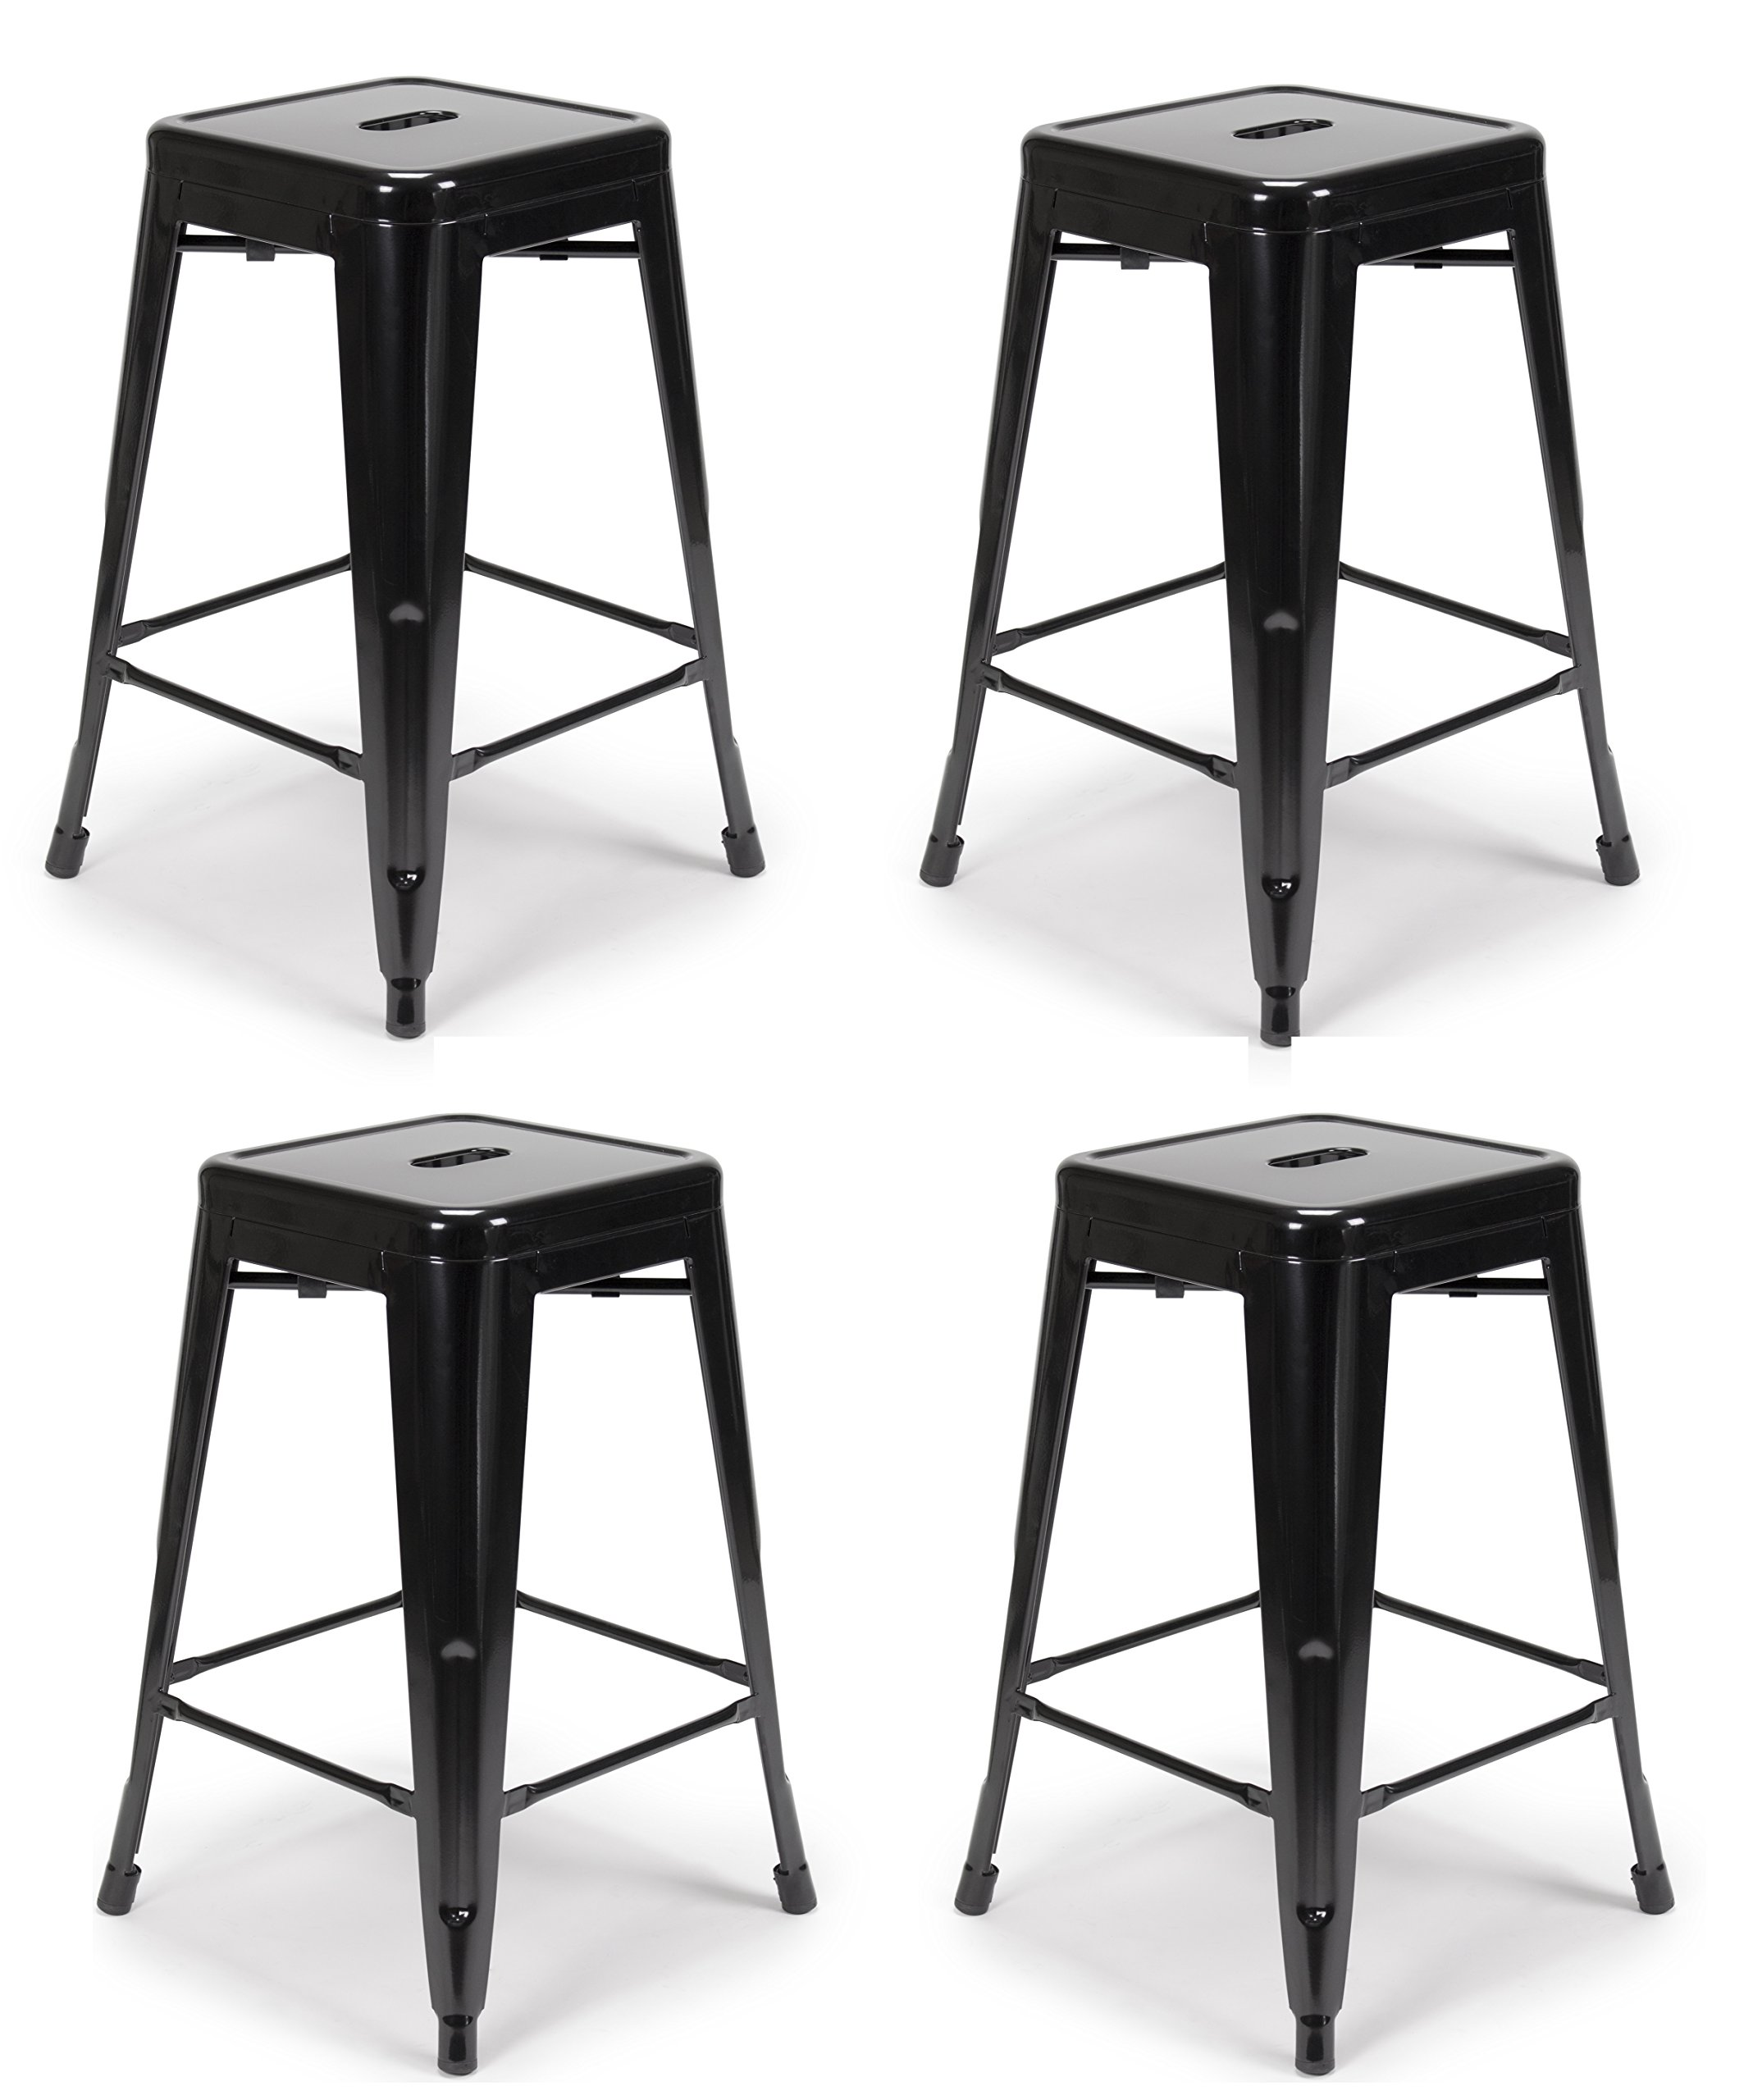 Stackable bar stools - Amazon bedroom chairs and stools ...